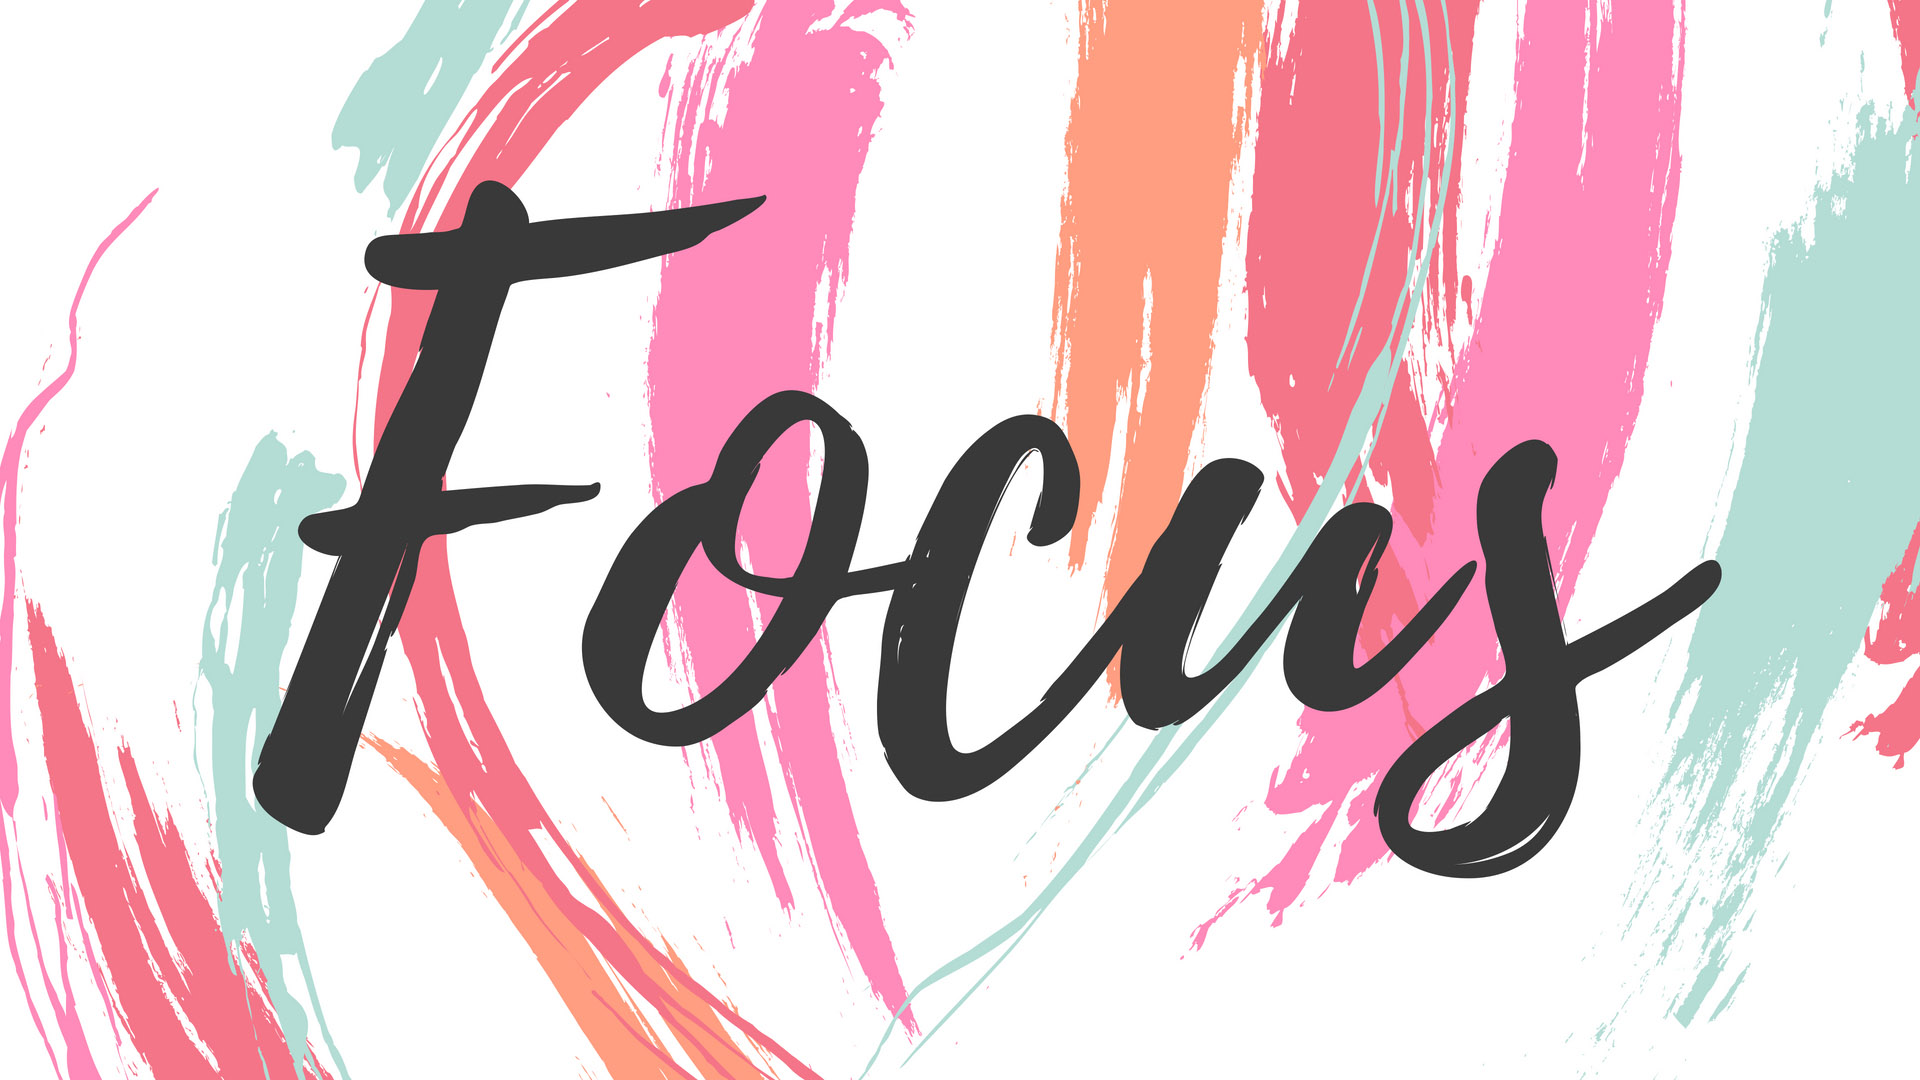 Focus | Girl Boss Mac Wallpapers by PreppyWallpapers.com